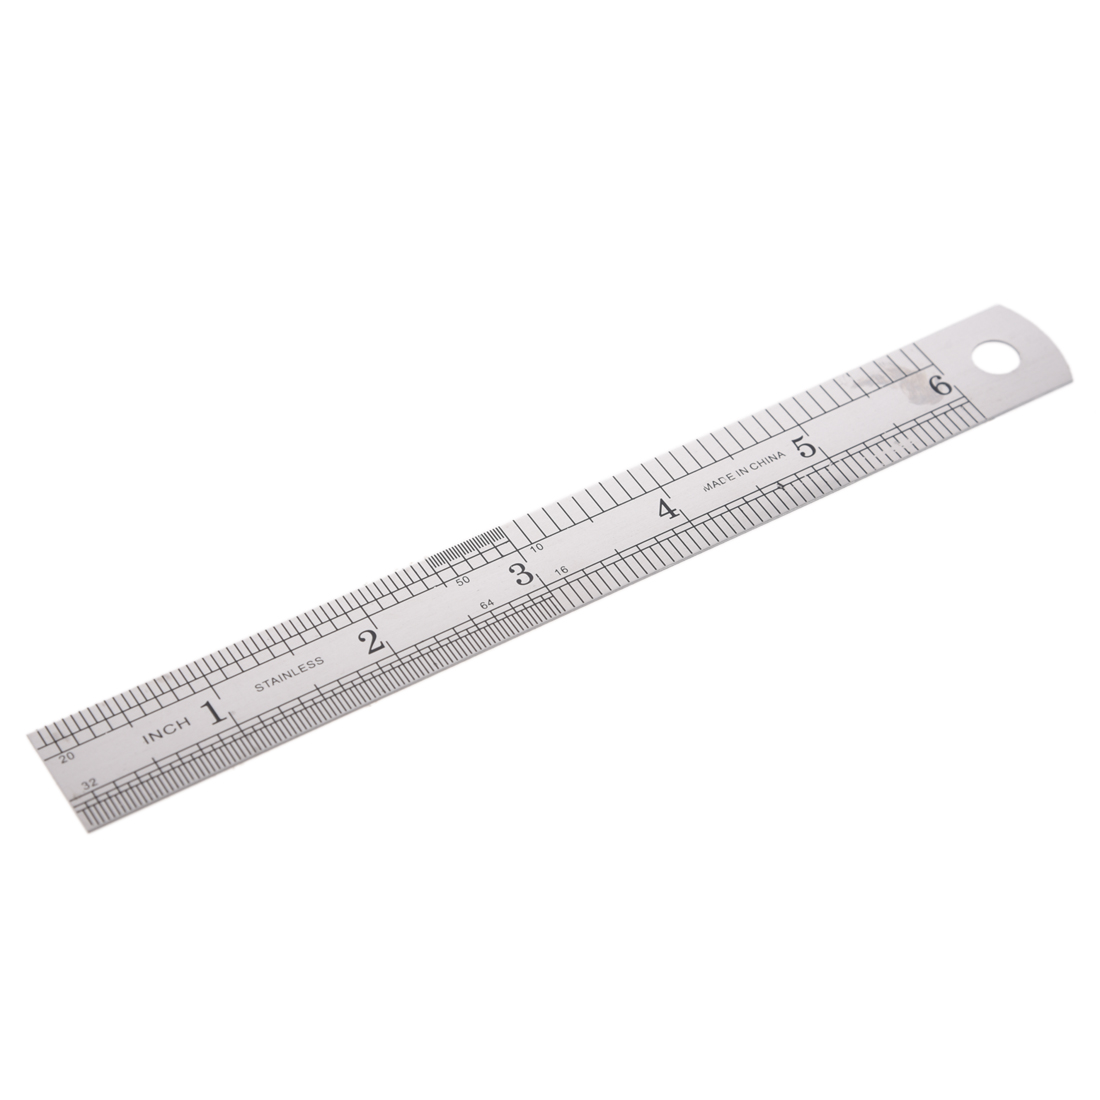 inch ruler to scale clipart best